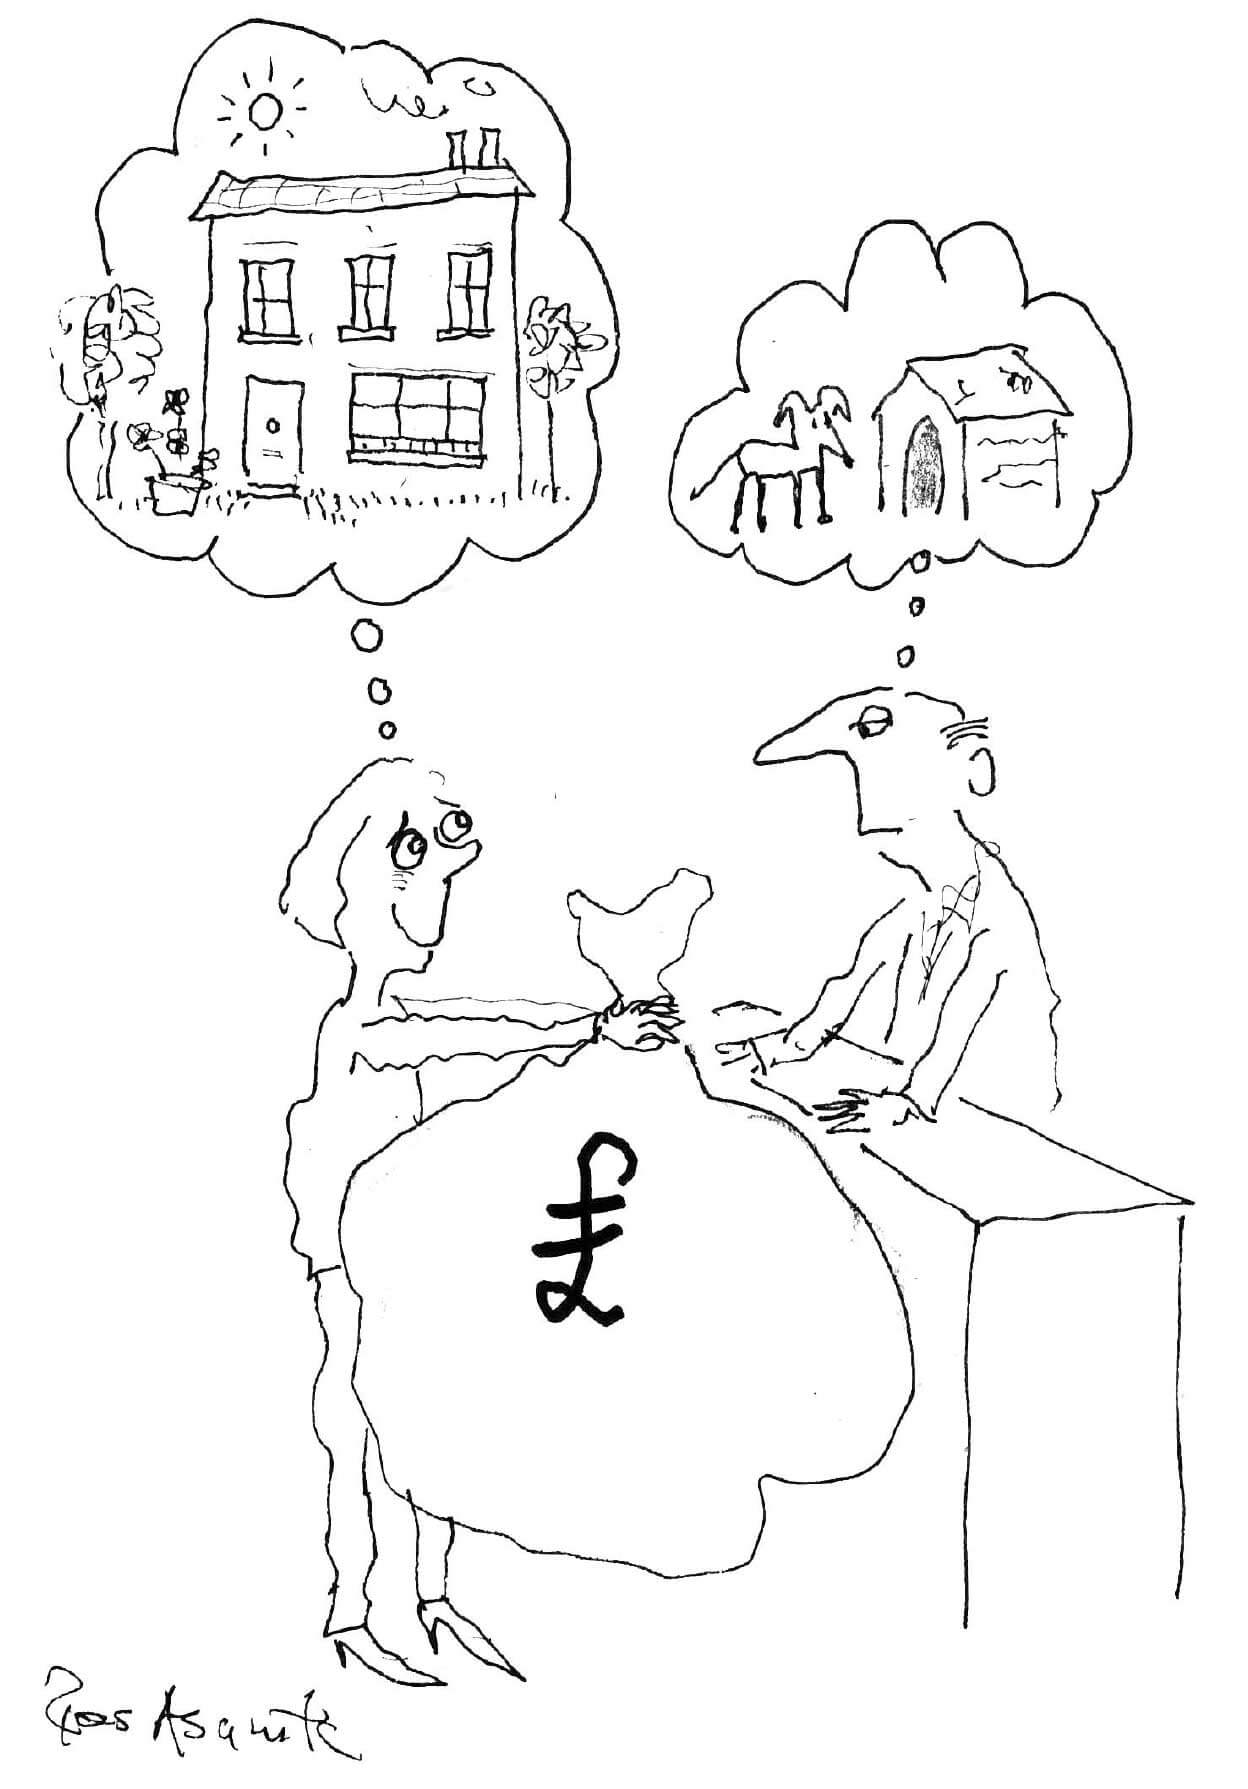 Ruth Whitehead Associates - mortgages cartoon